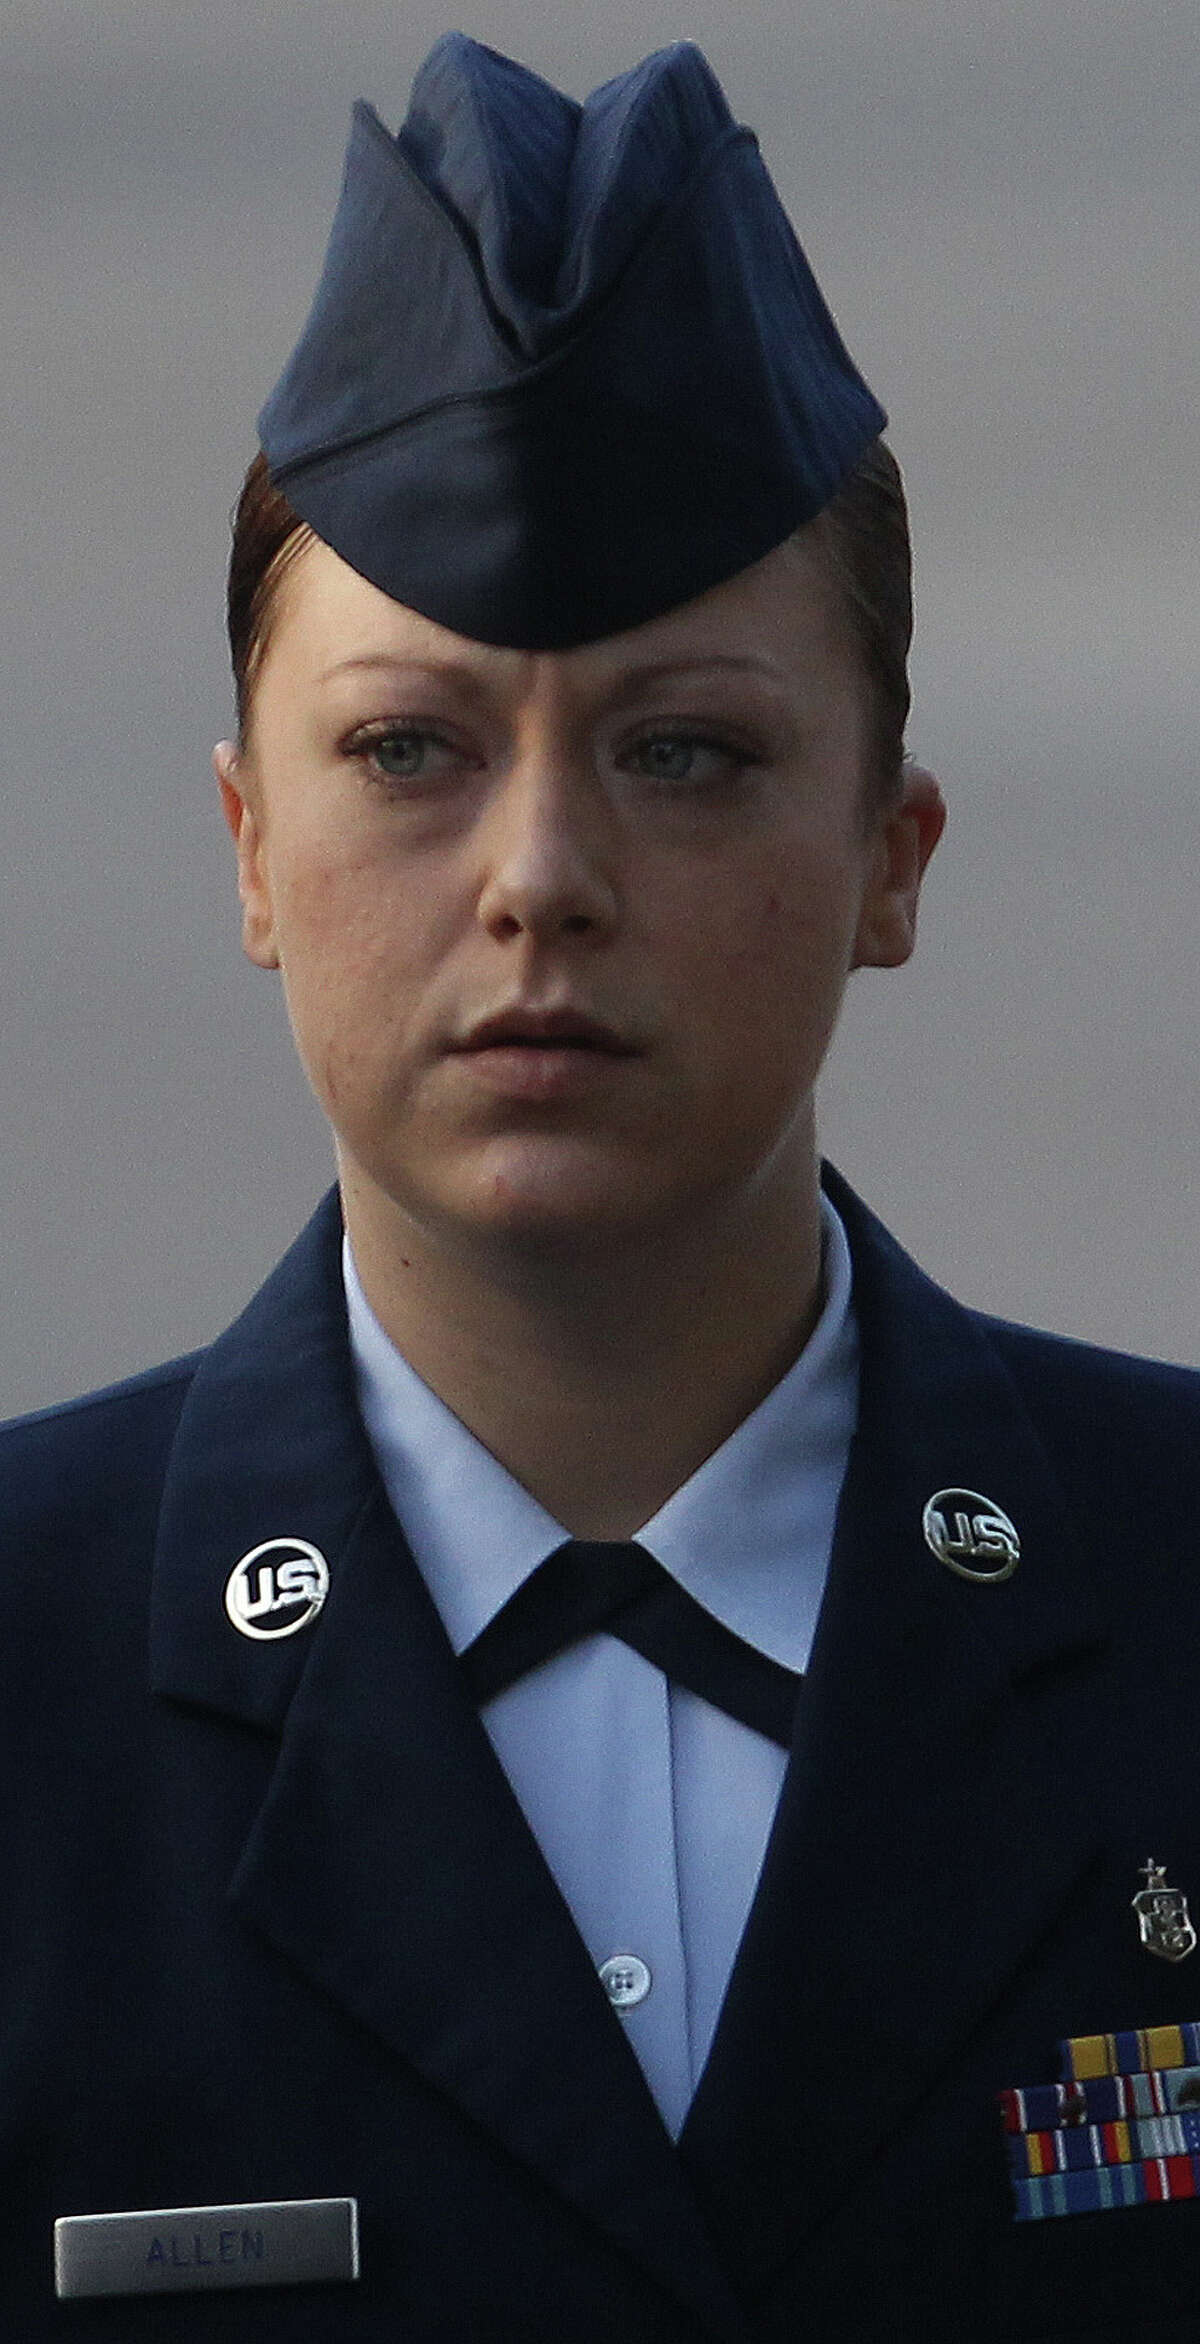 U.S. Air Force Staff Sergeant Emily Allen walks to a hearing Wednesday May 1, 2013 at Joint Base San Antonio-Lackland. Allen is the first woman basic training instructor charged in the scandal at Joint Base San Antonio-Lackland and is charged with having sex with a trainee.